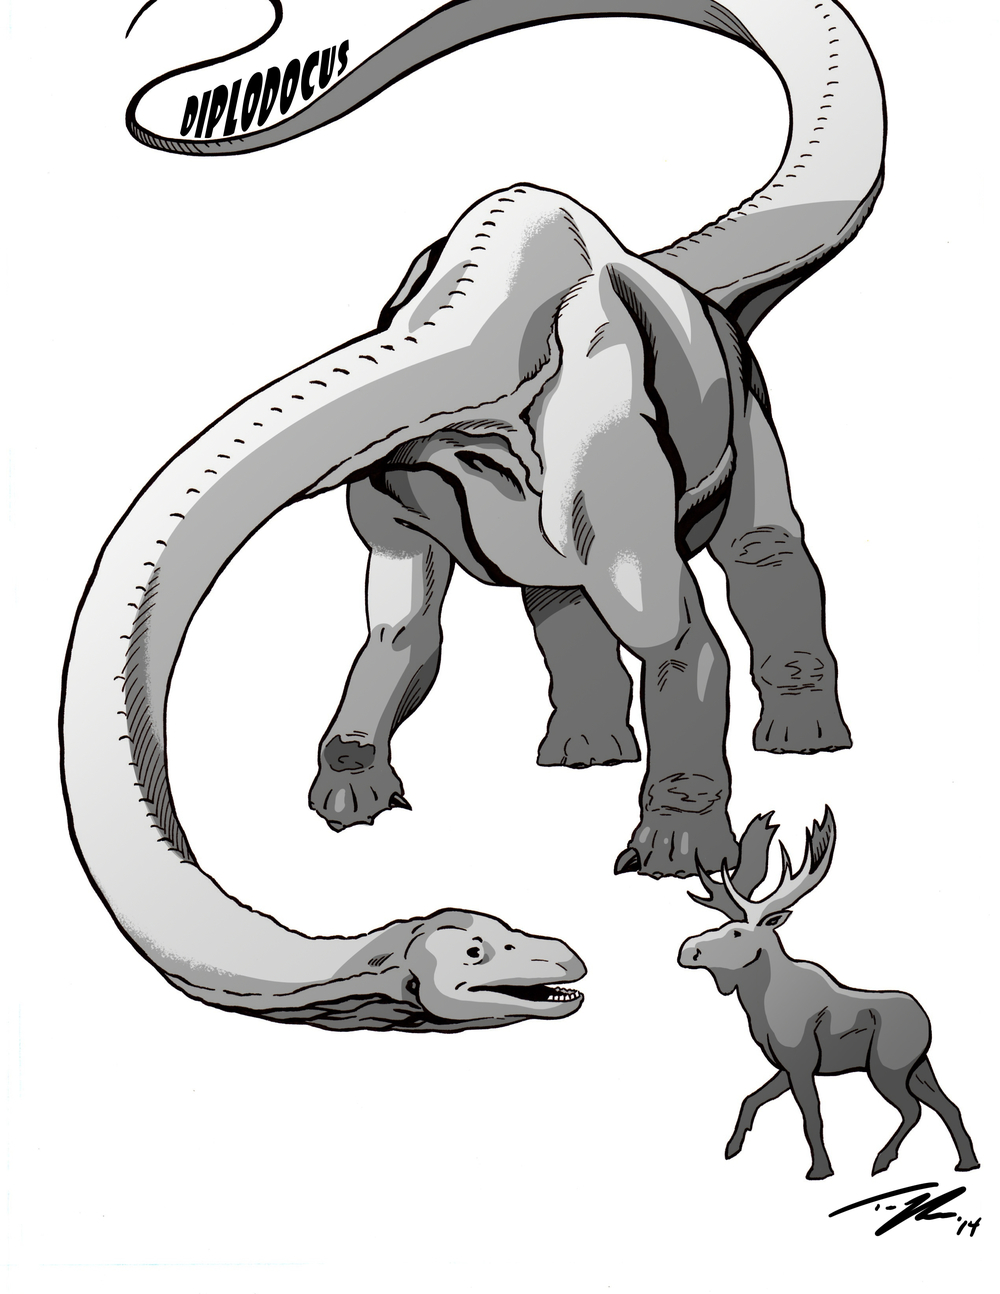 Big herbivores, past and present. Diplodocus meets Moose.